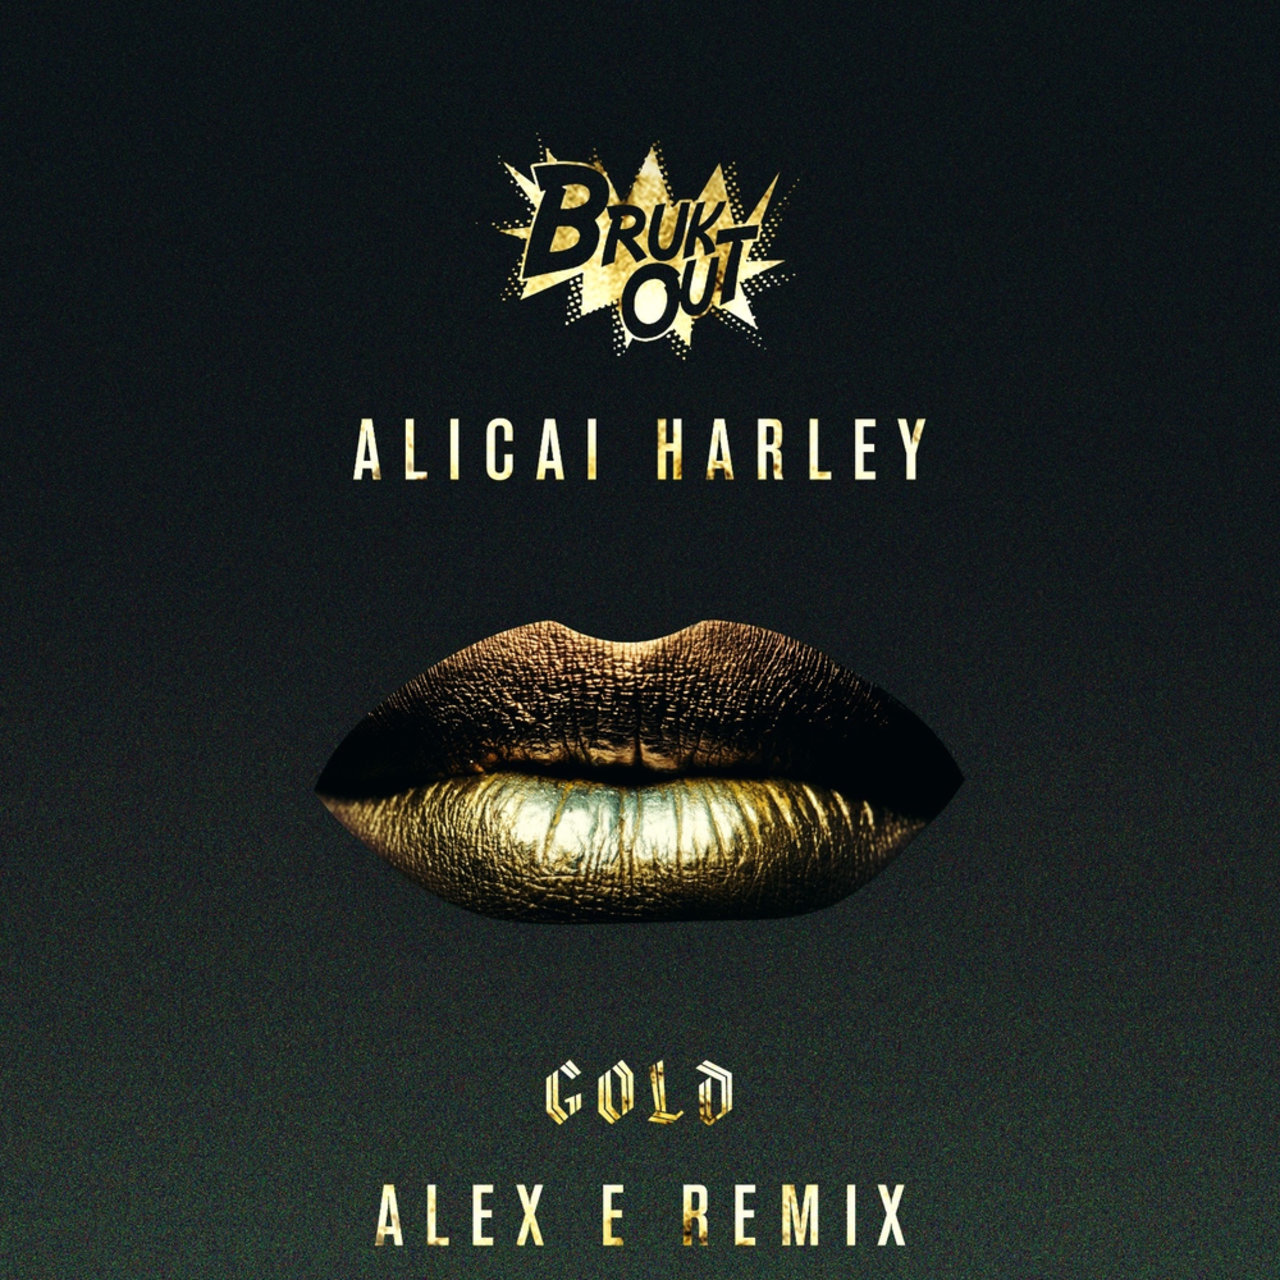 Gold (Alex E Remix)